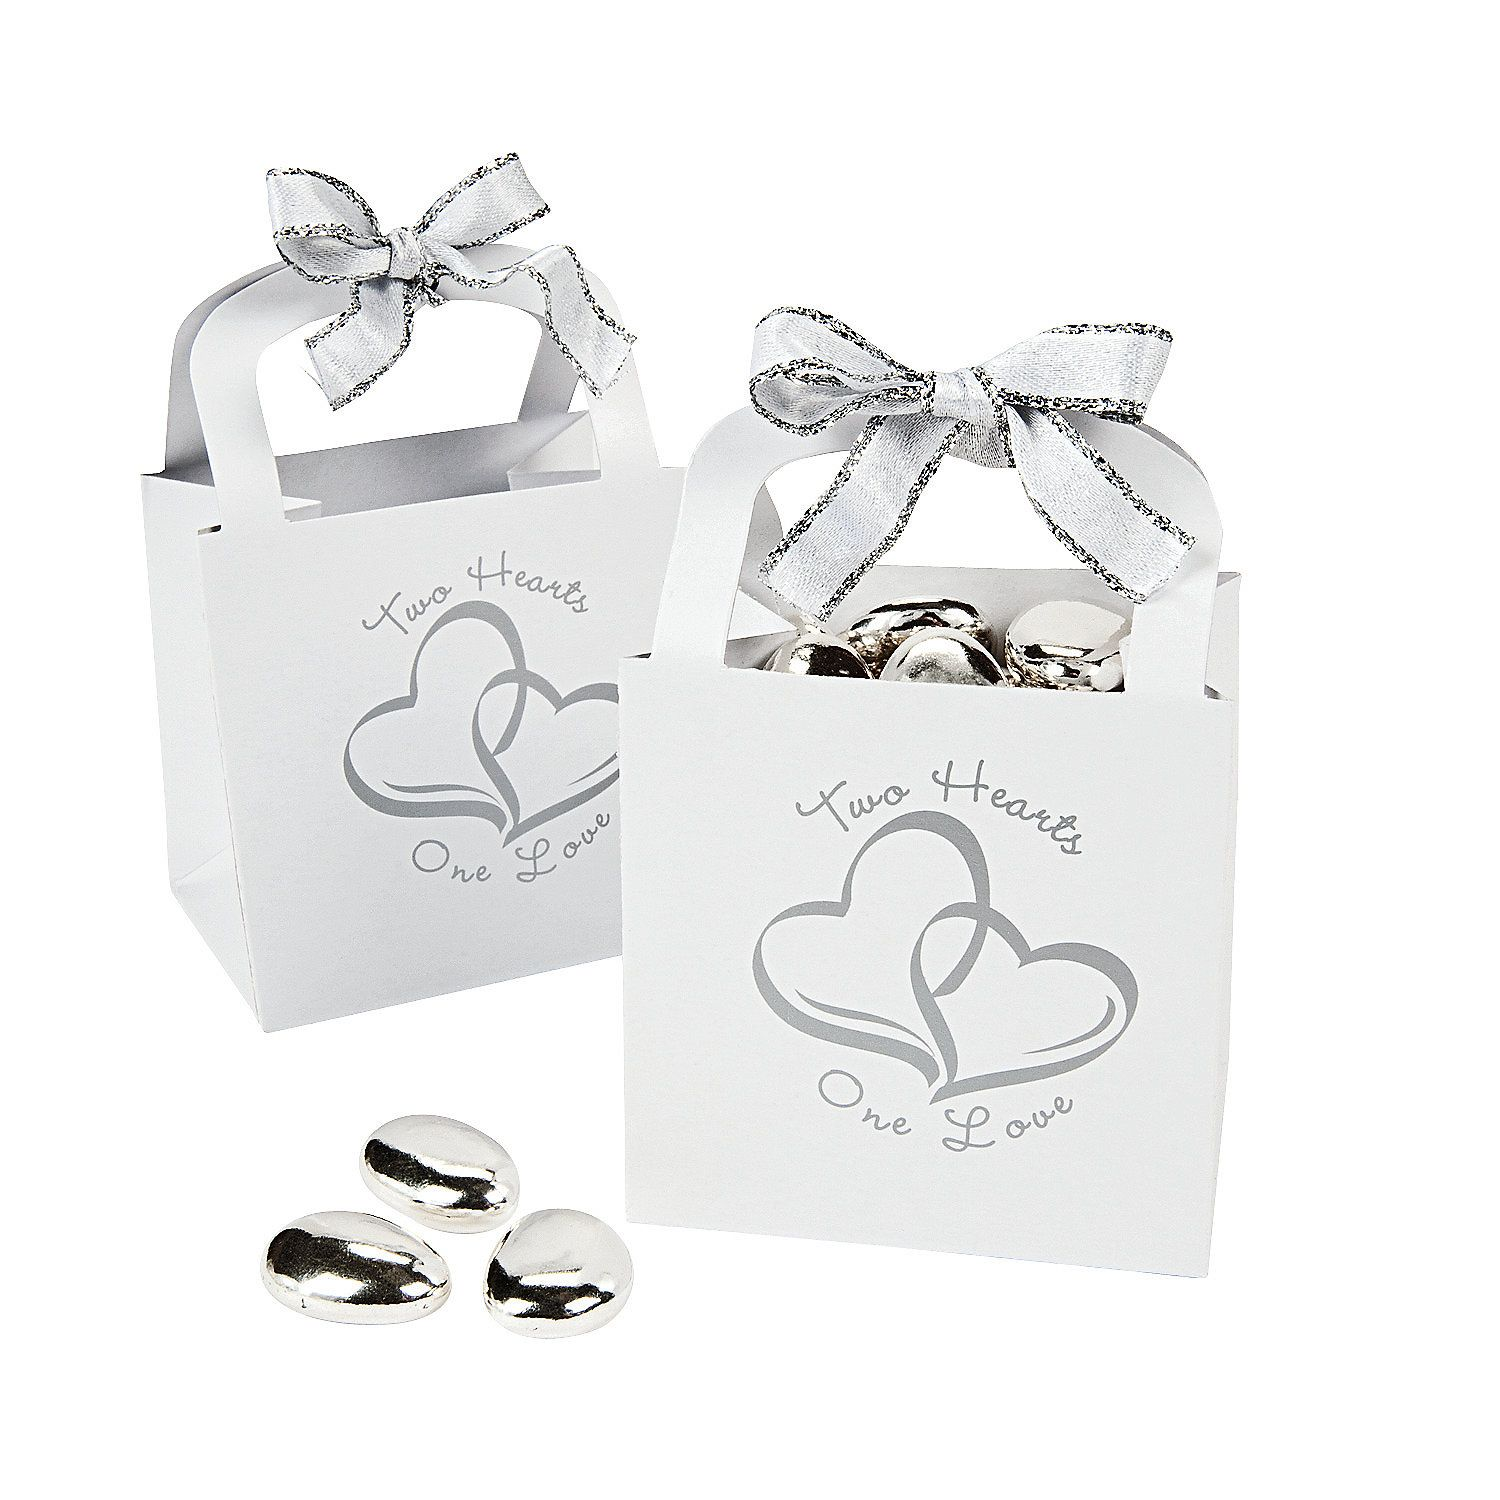 Two Hearts Wedding Favor Gift Baskets | Favors, Weddings and Wedding